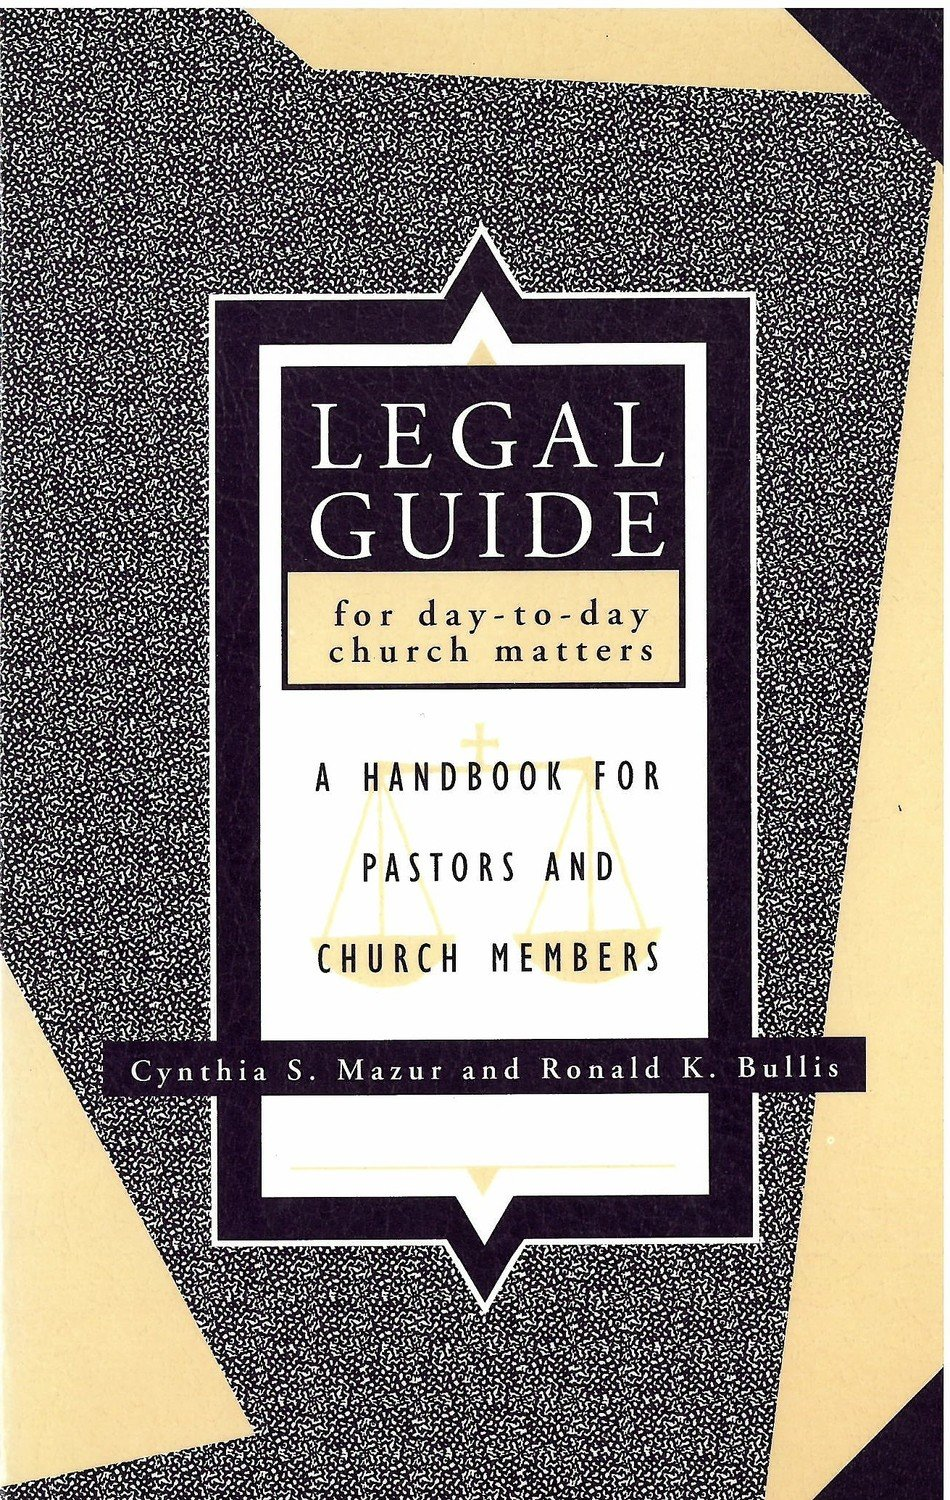 Legal Guide for Day-To-Day Church Matters: A Handbook for Pastors and Church Members